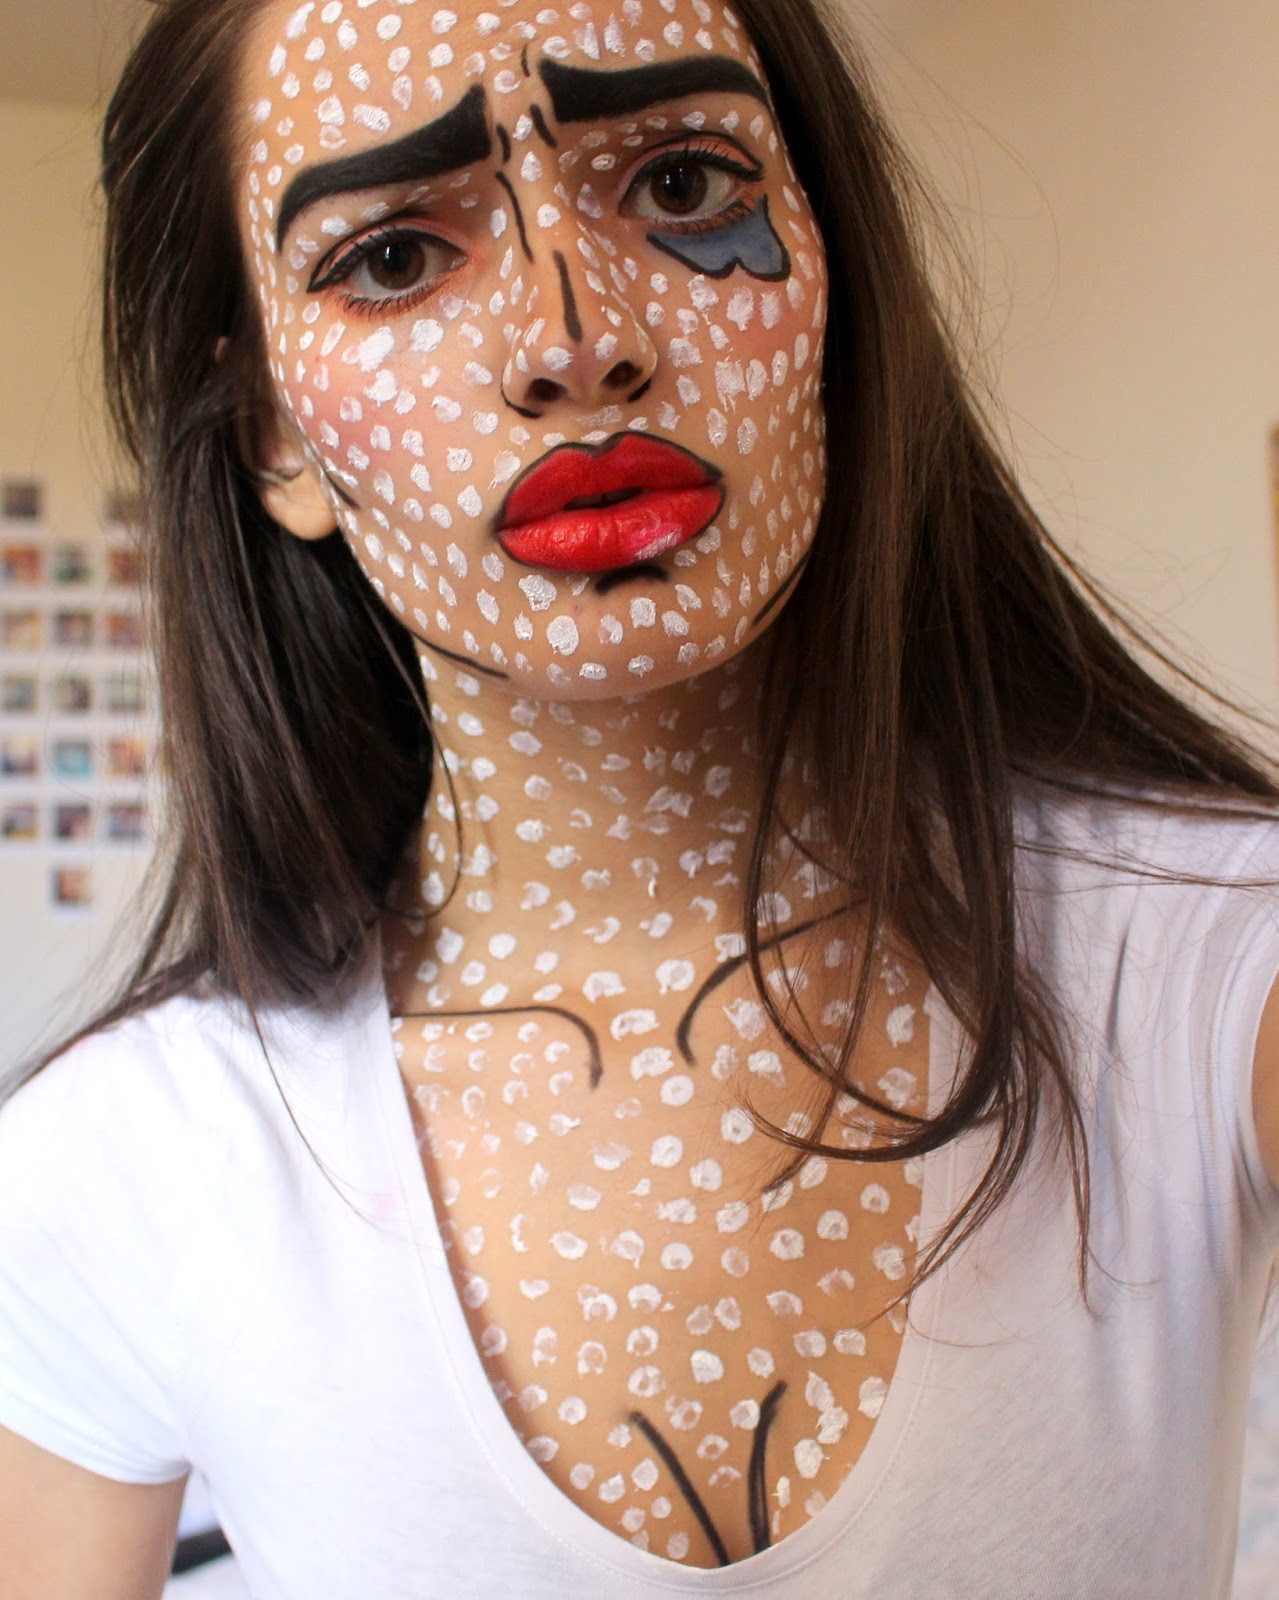 Top 5 Halloween Makeup Ideas To Copy This Year - Makeup Mask Ideas